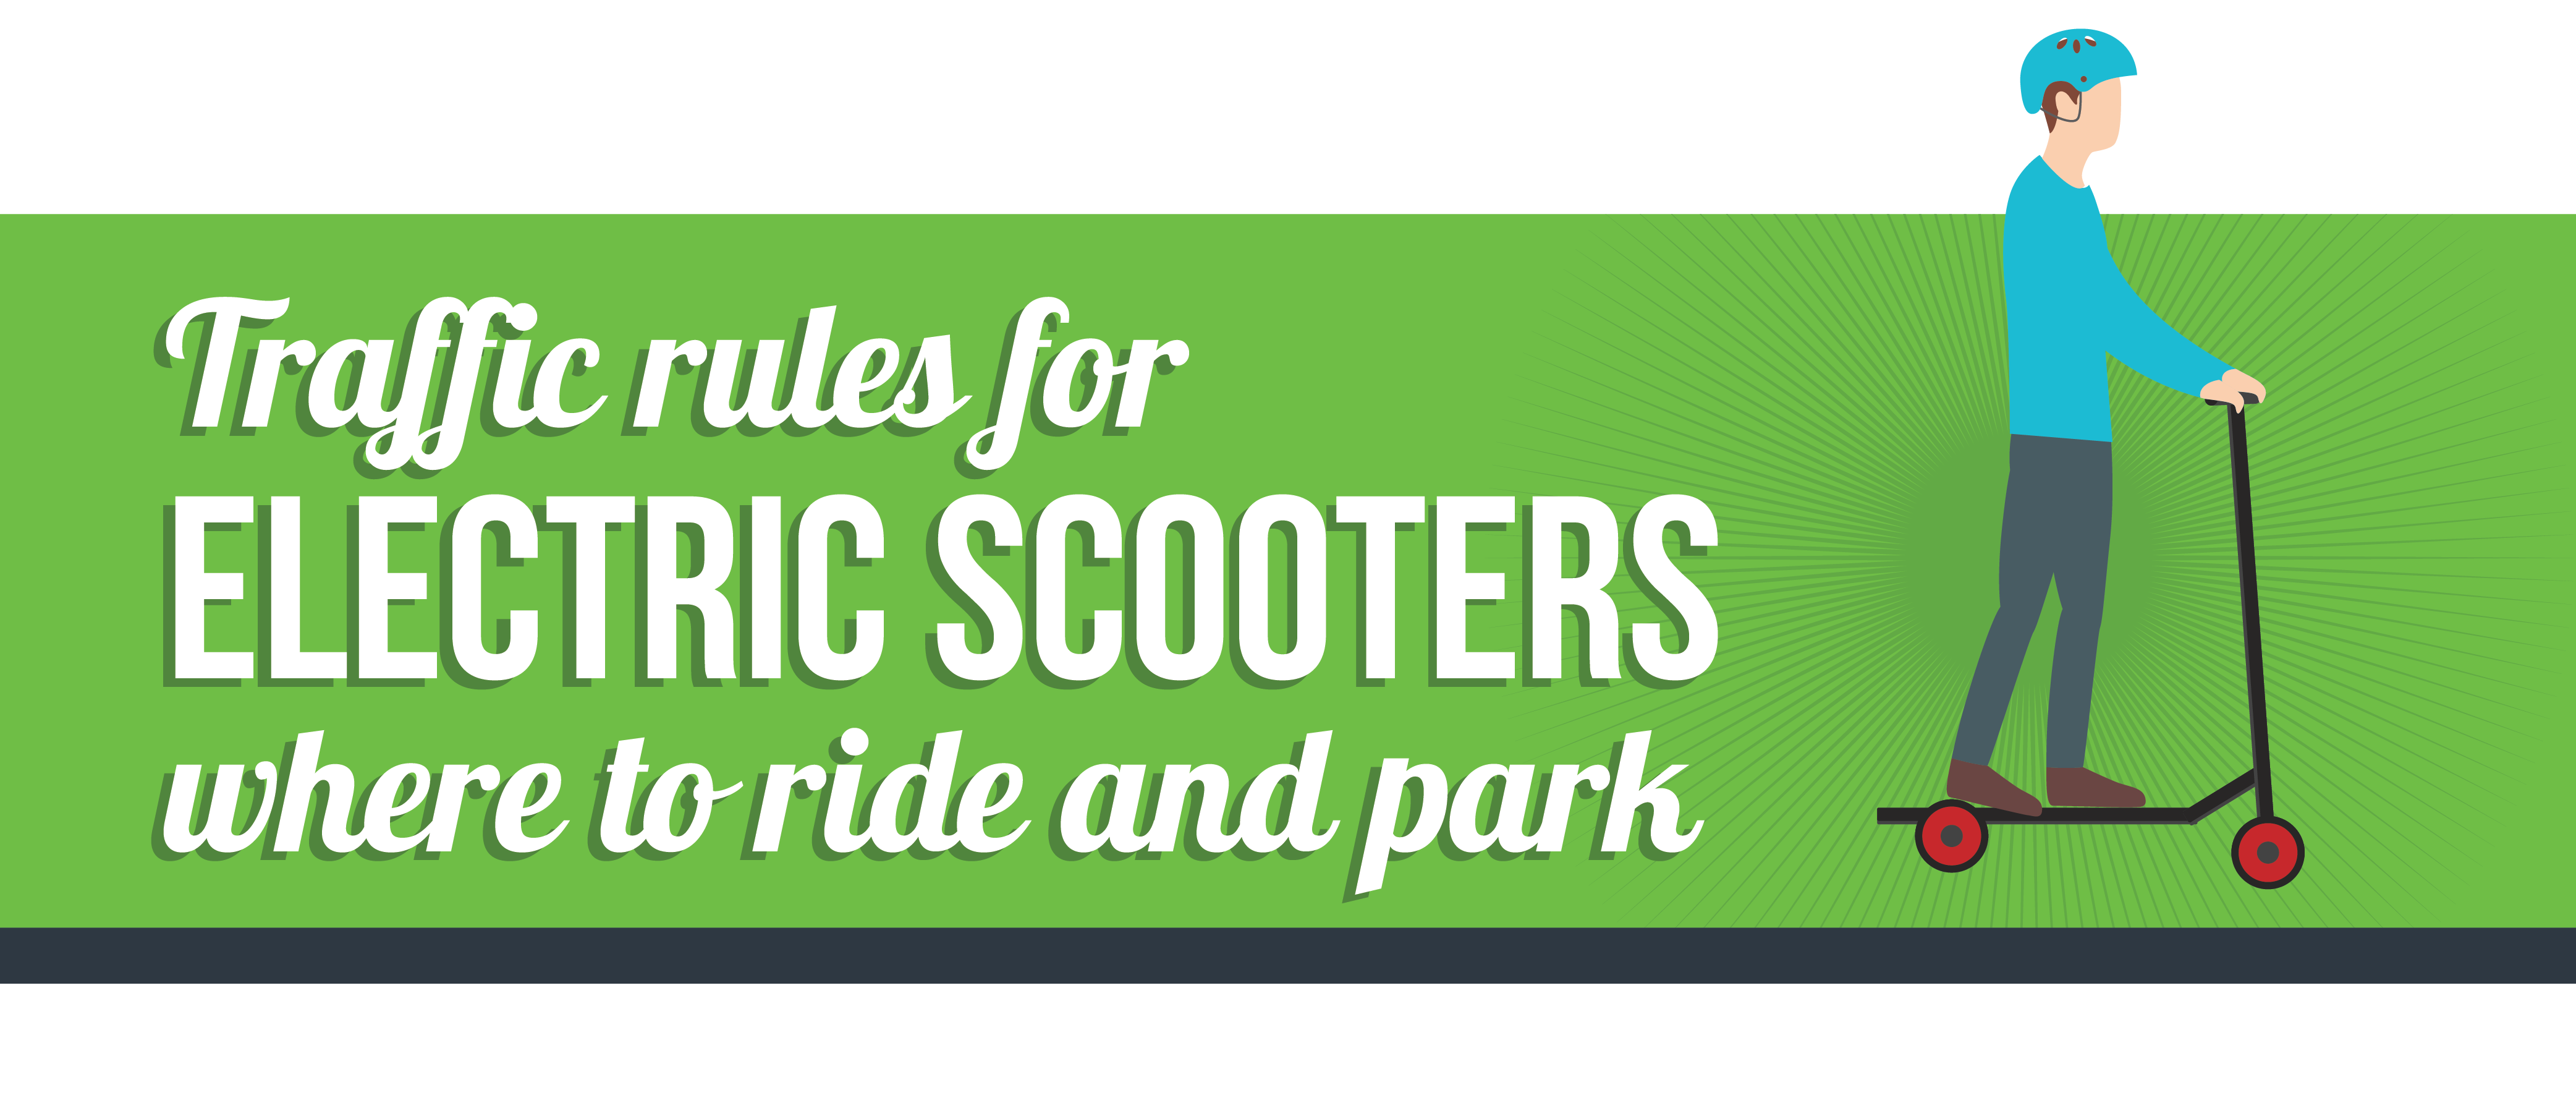 Traffic rules for electric scooters - Where are you allowed to ride and park